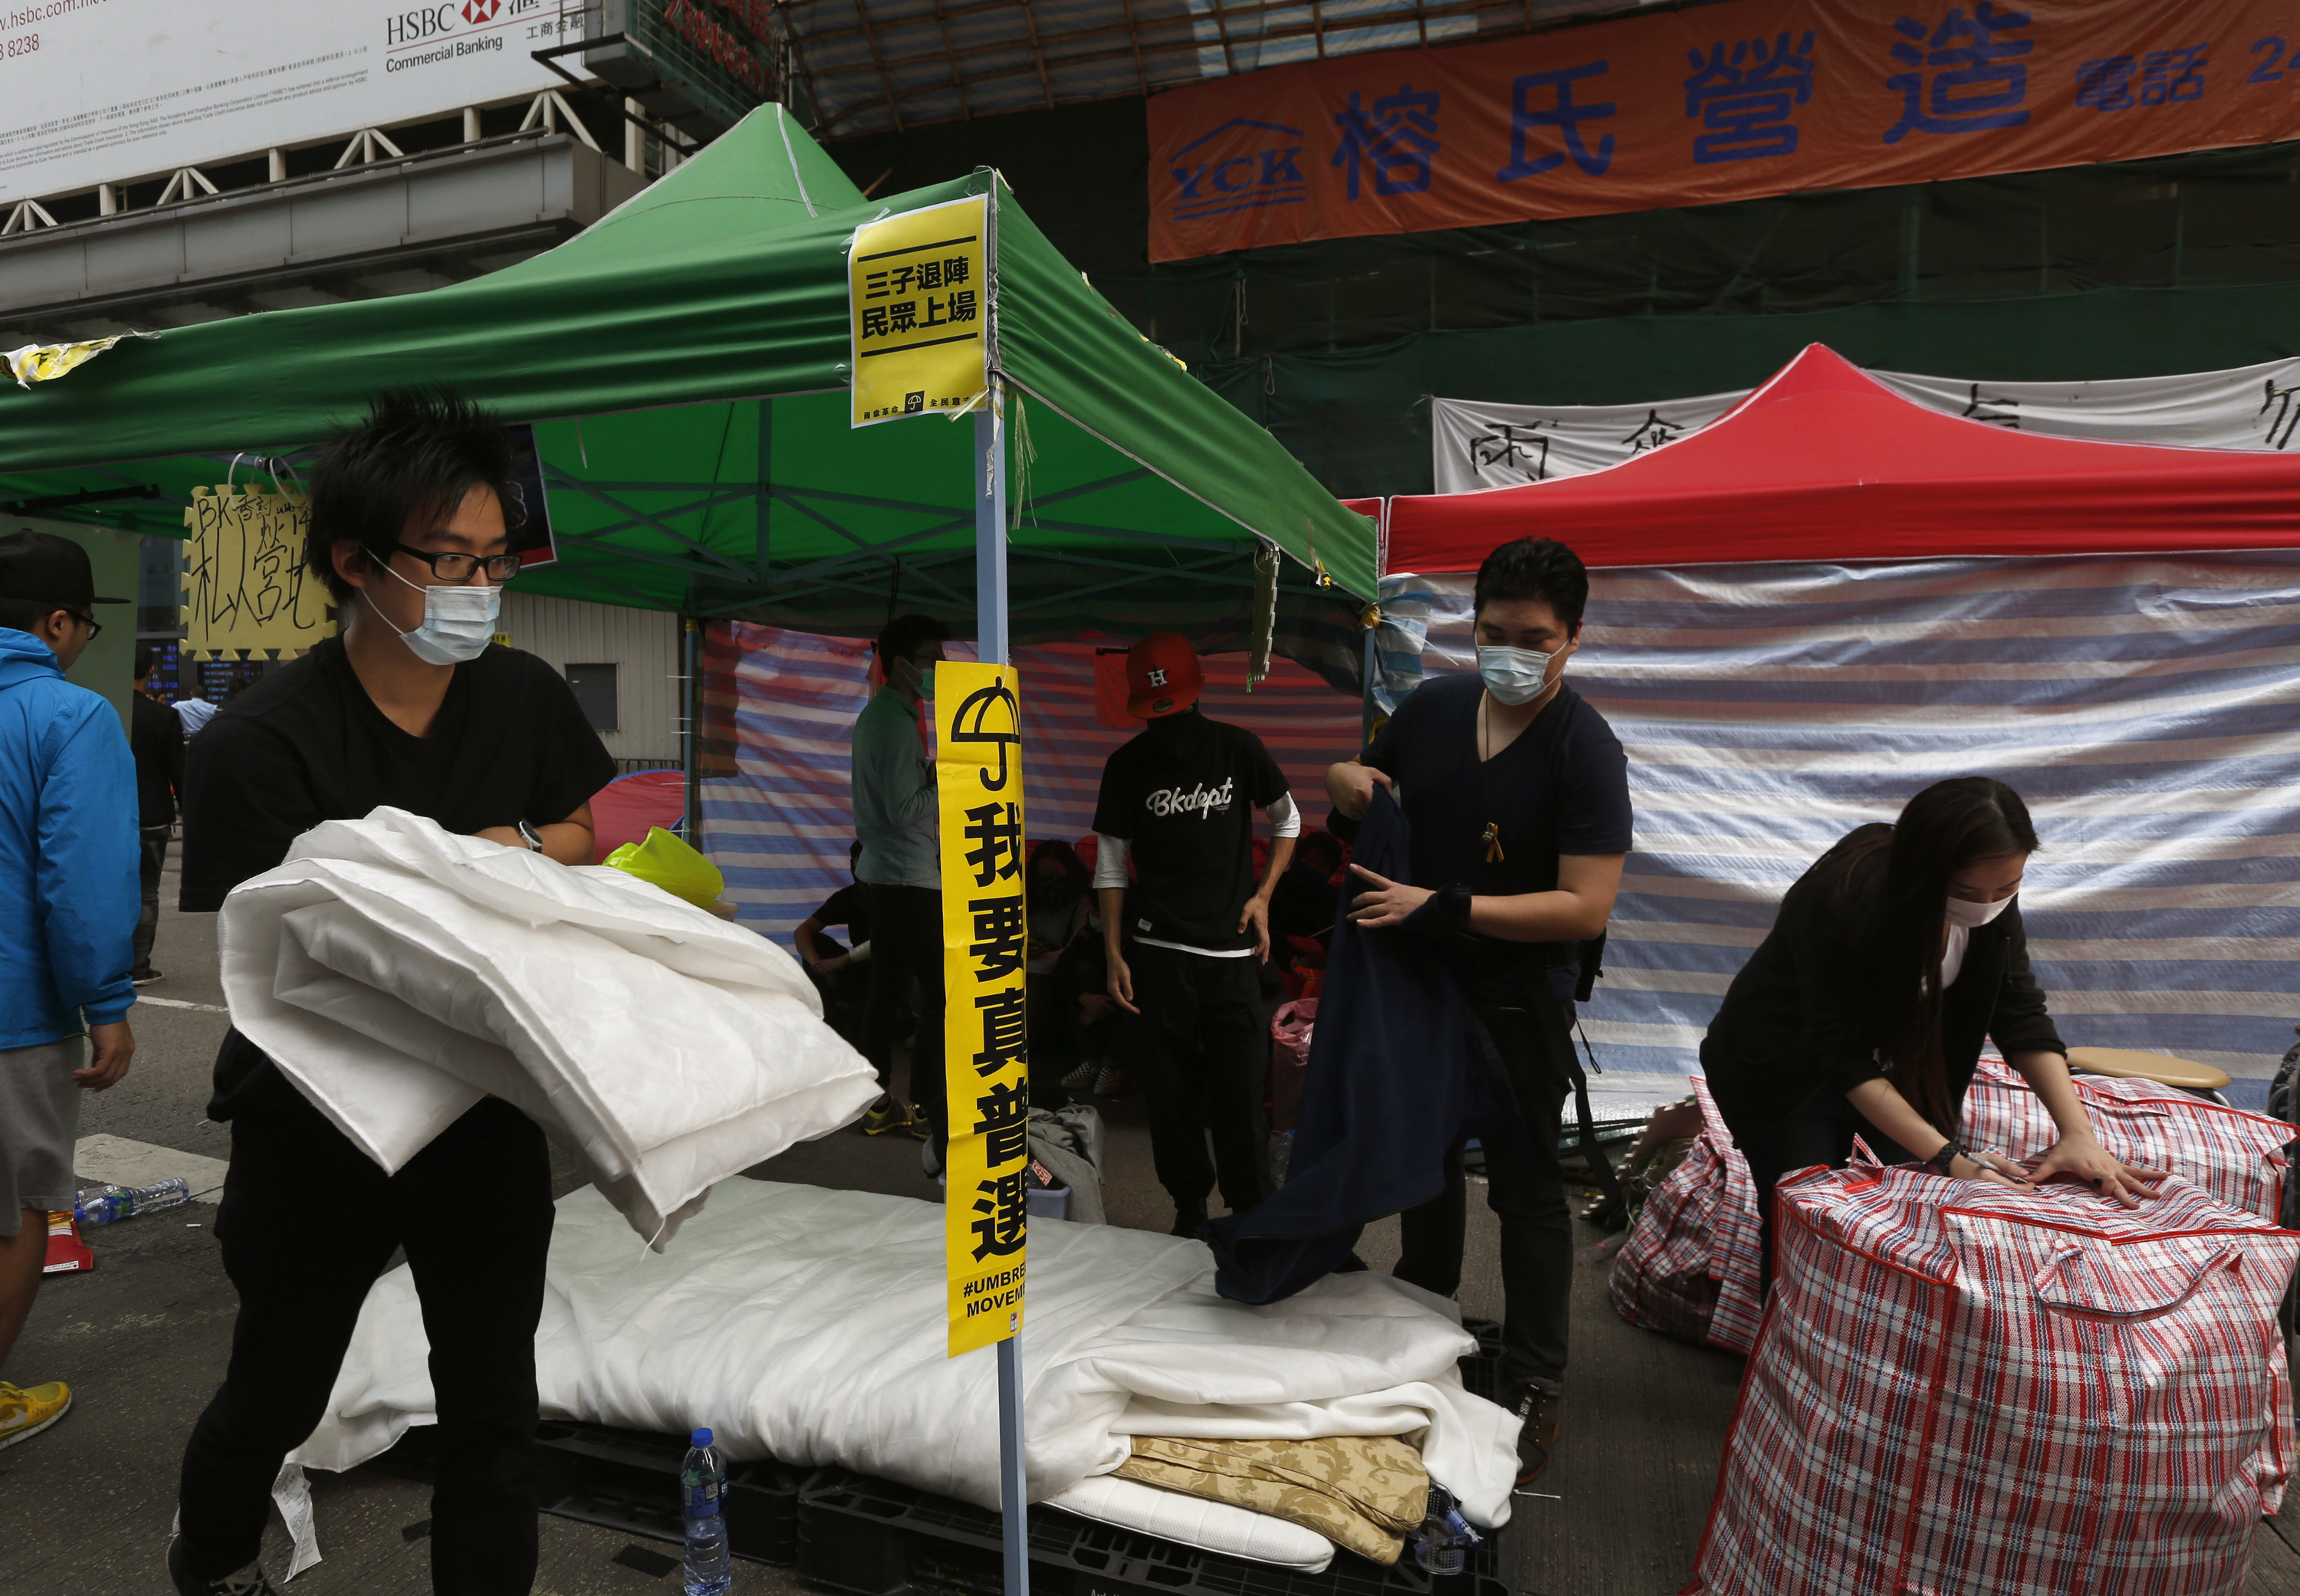 Masked pro-democracy protesters who have occupied a street at Mong Kok shopping district in Hong Kong  pack their belongings on Nov. 19, 2014, before they are removed by bailiffs under a court injunction